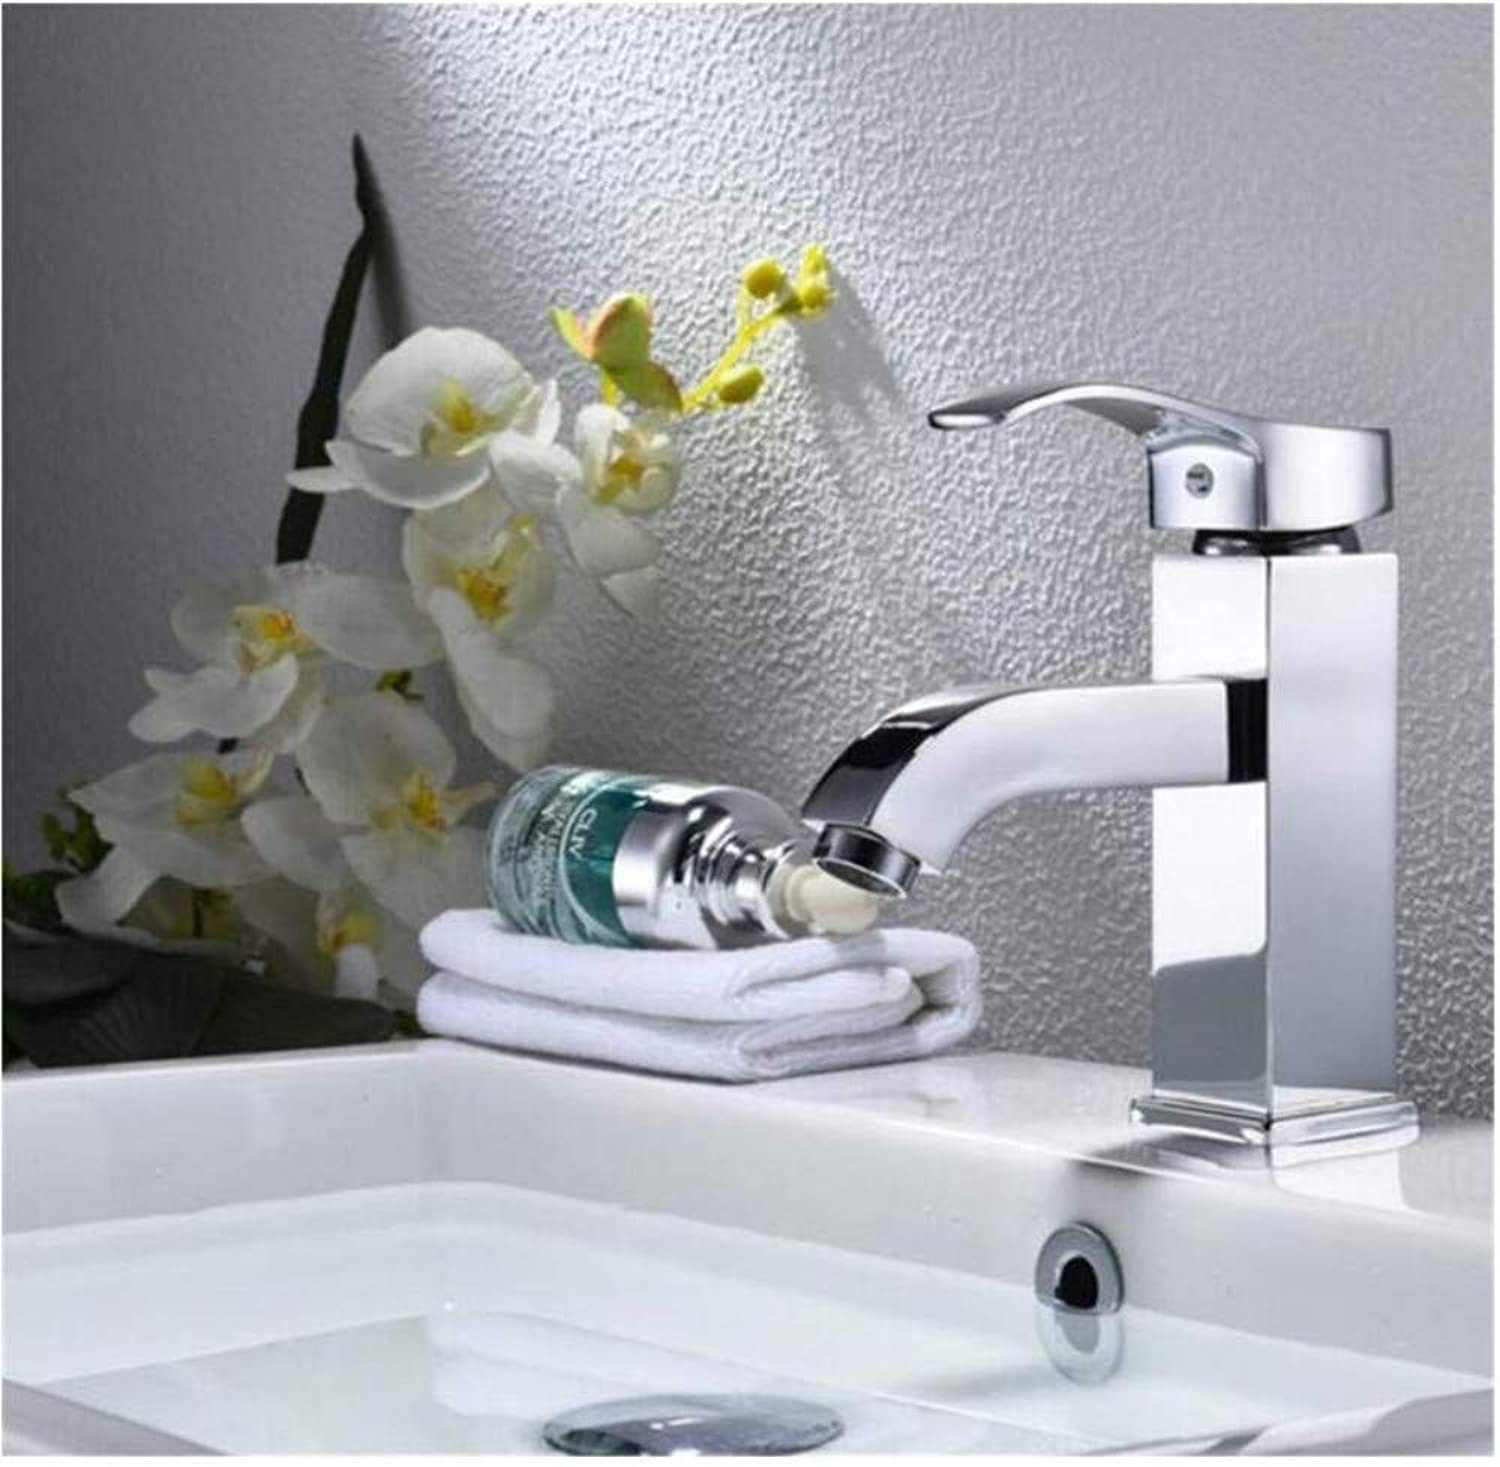 Modern Double Basin Sink Hot and Cold Water Faucettap Cold Hot Water.Single Handle Hole Hot Cold Water Mixer